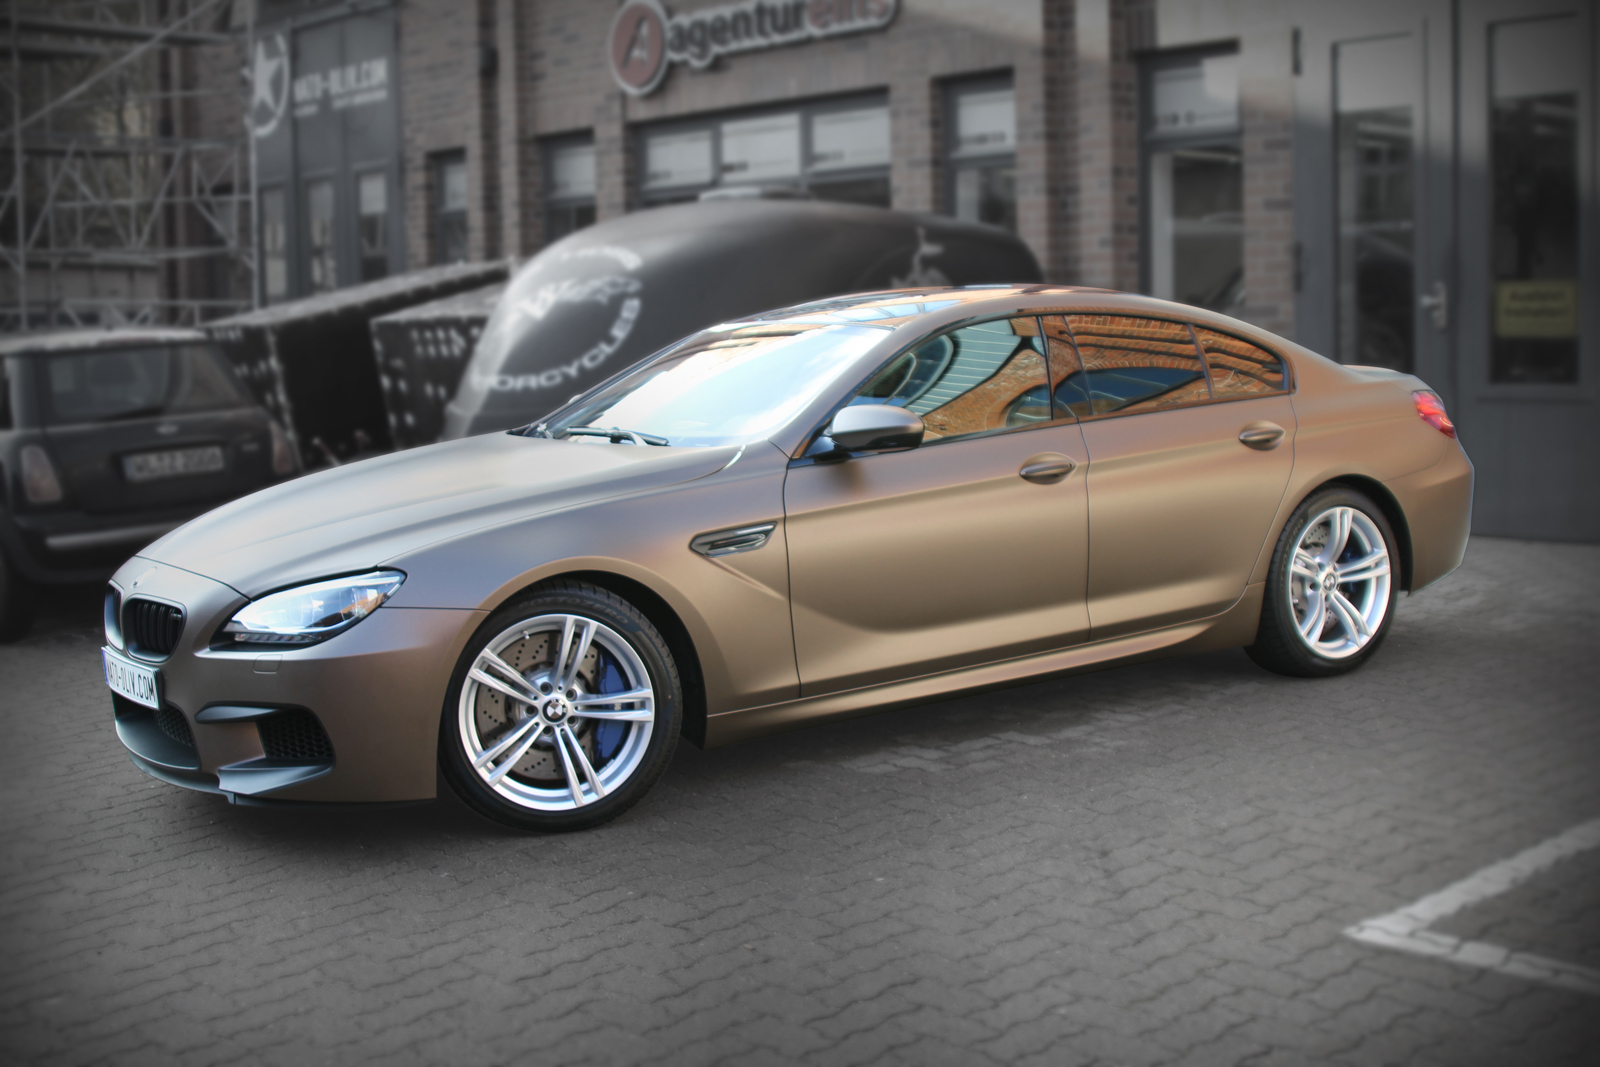 BMW M6 car wrapping braun matt metallic